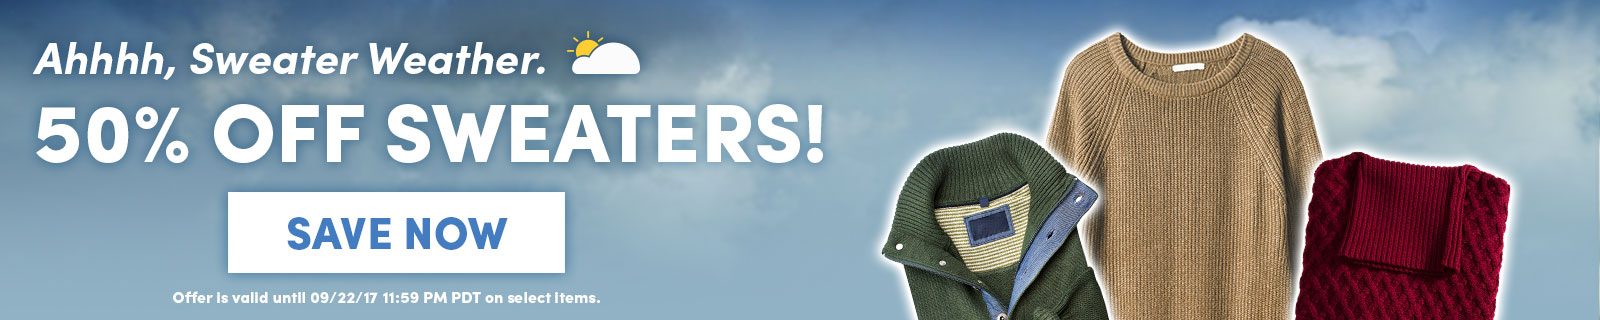 Ahh. Sweater Weather. 50% off Sweaters! Save Now